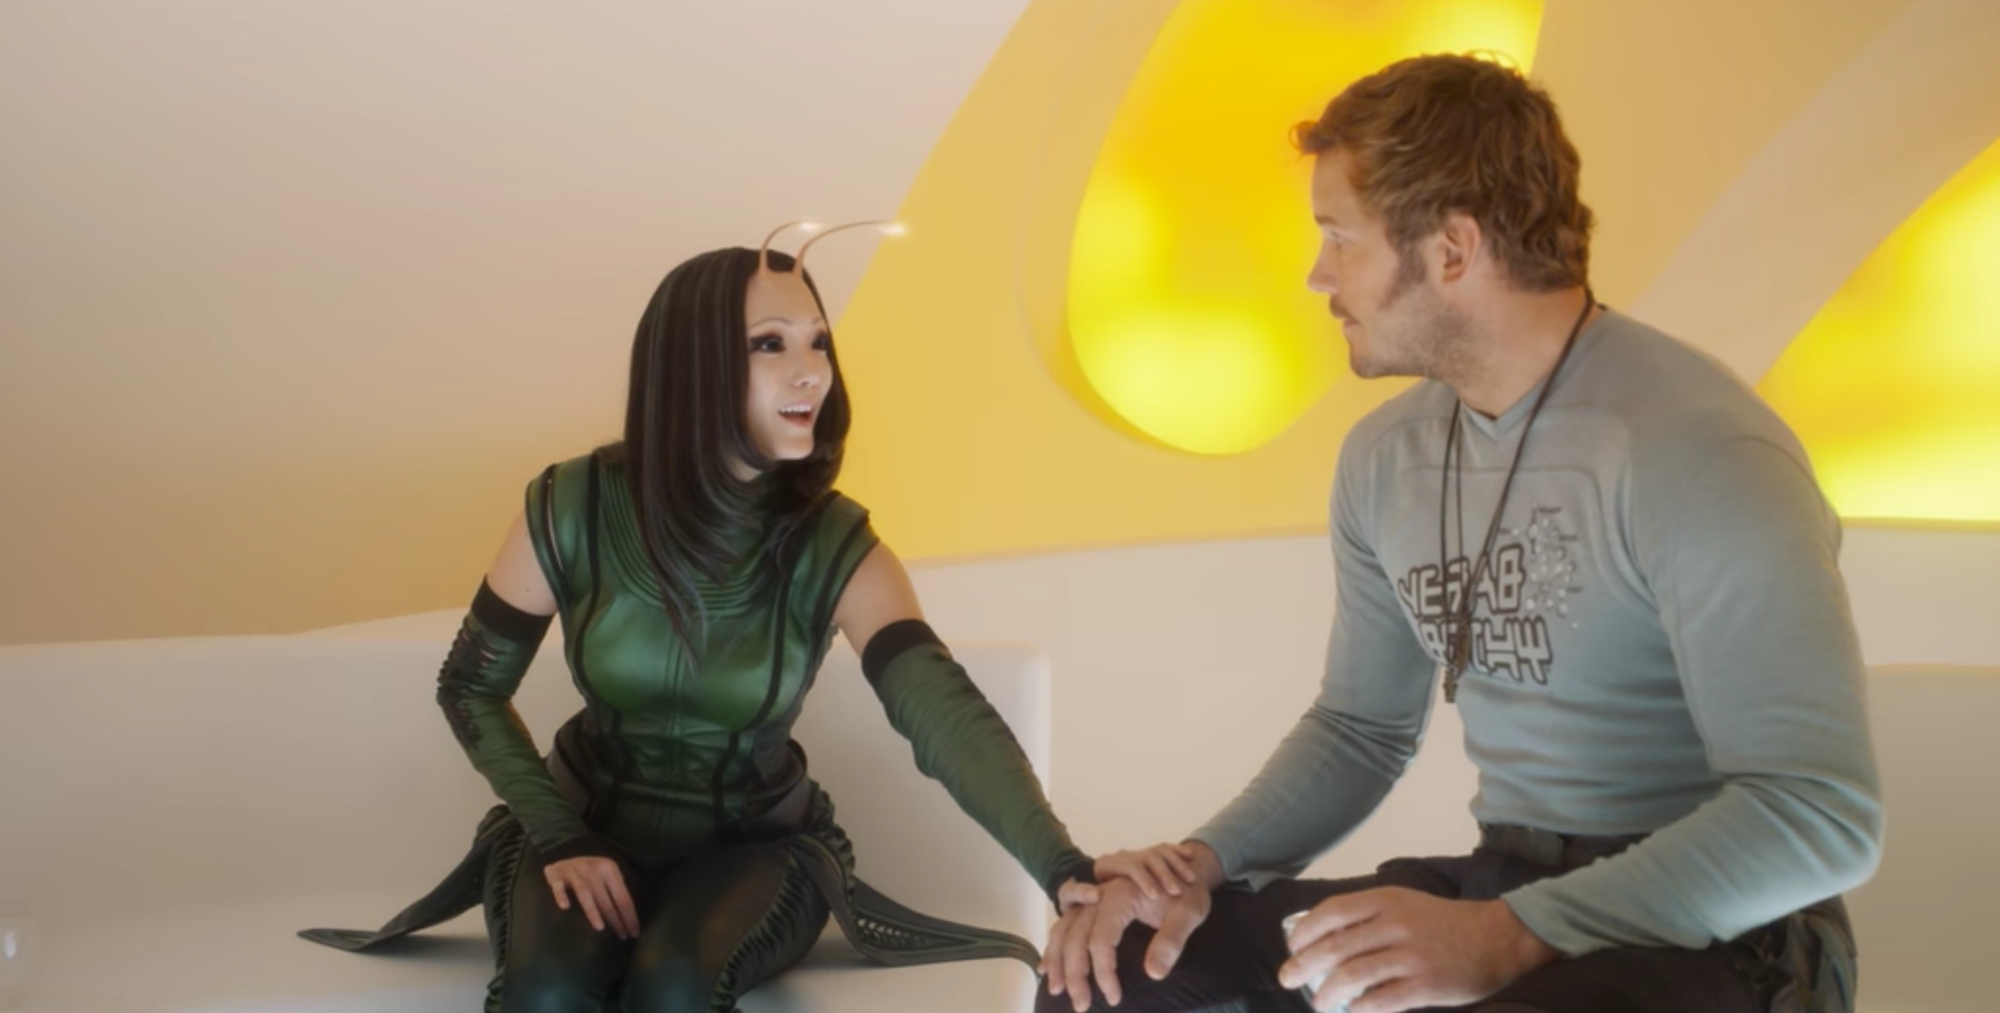 Guardiani della galassia Vol.2: Mantis e Star Lord in un immagine del film